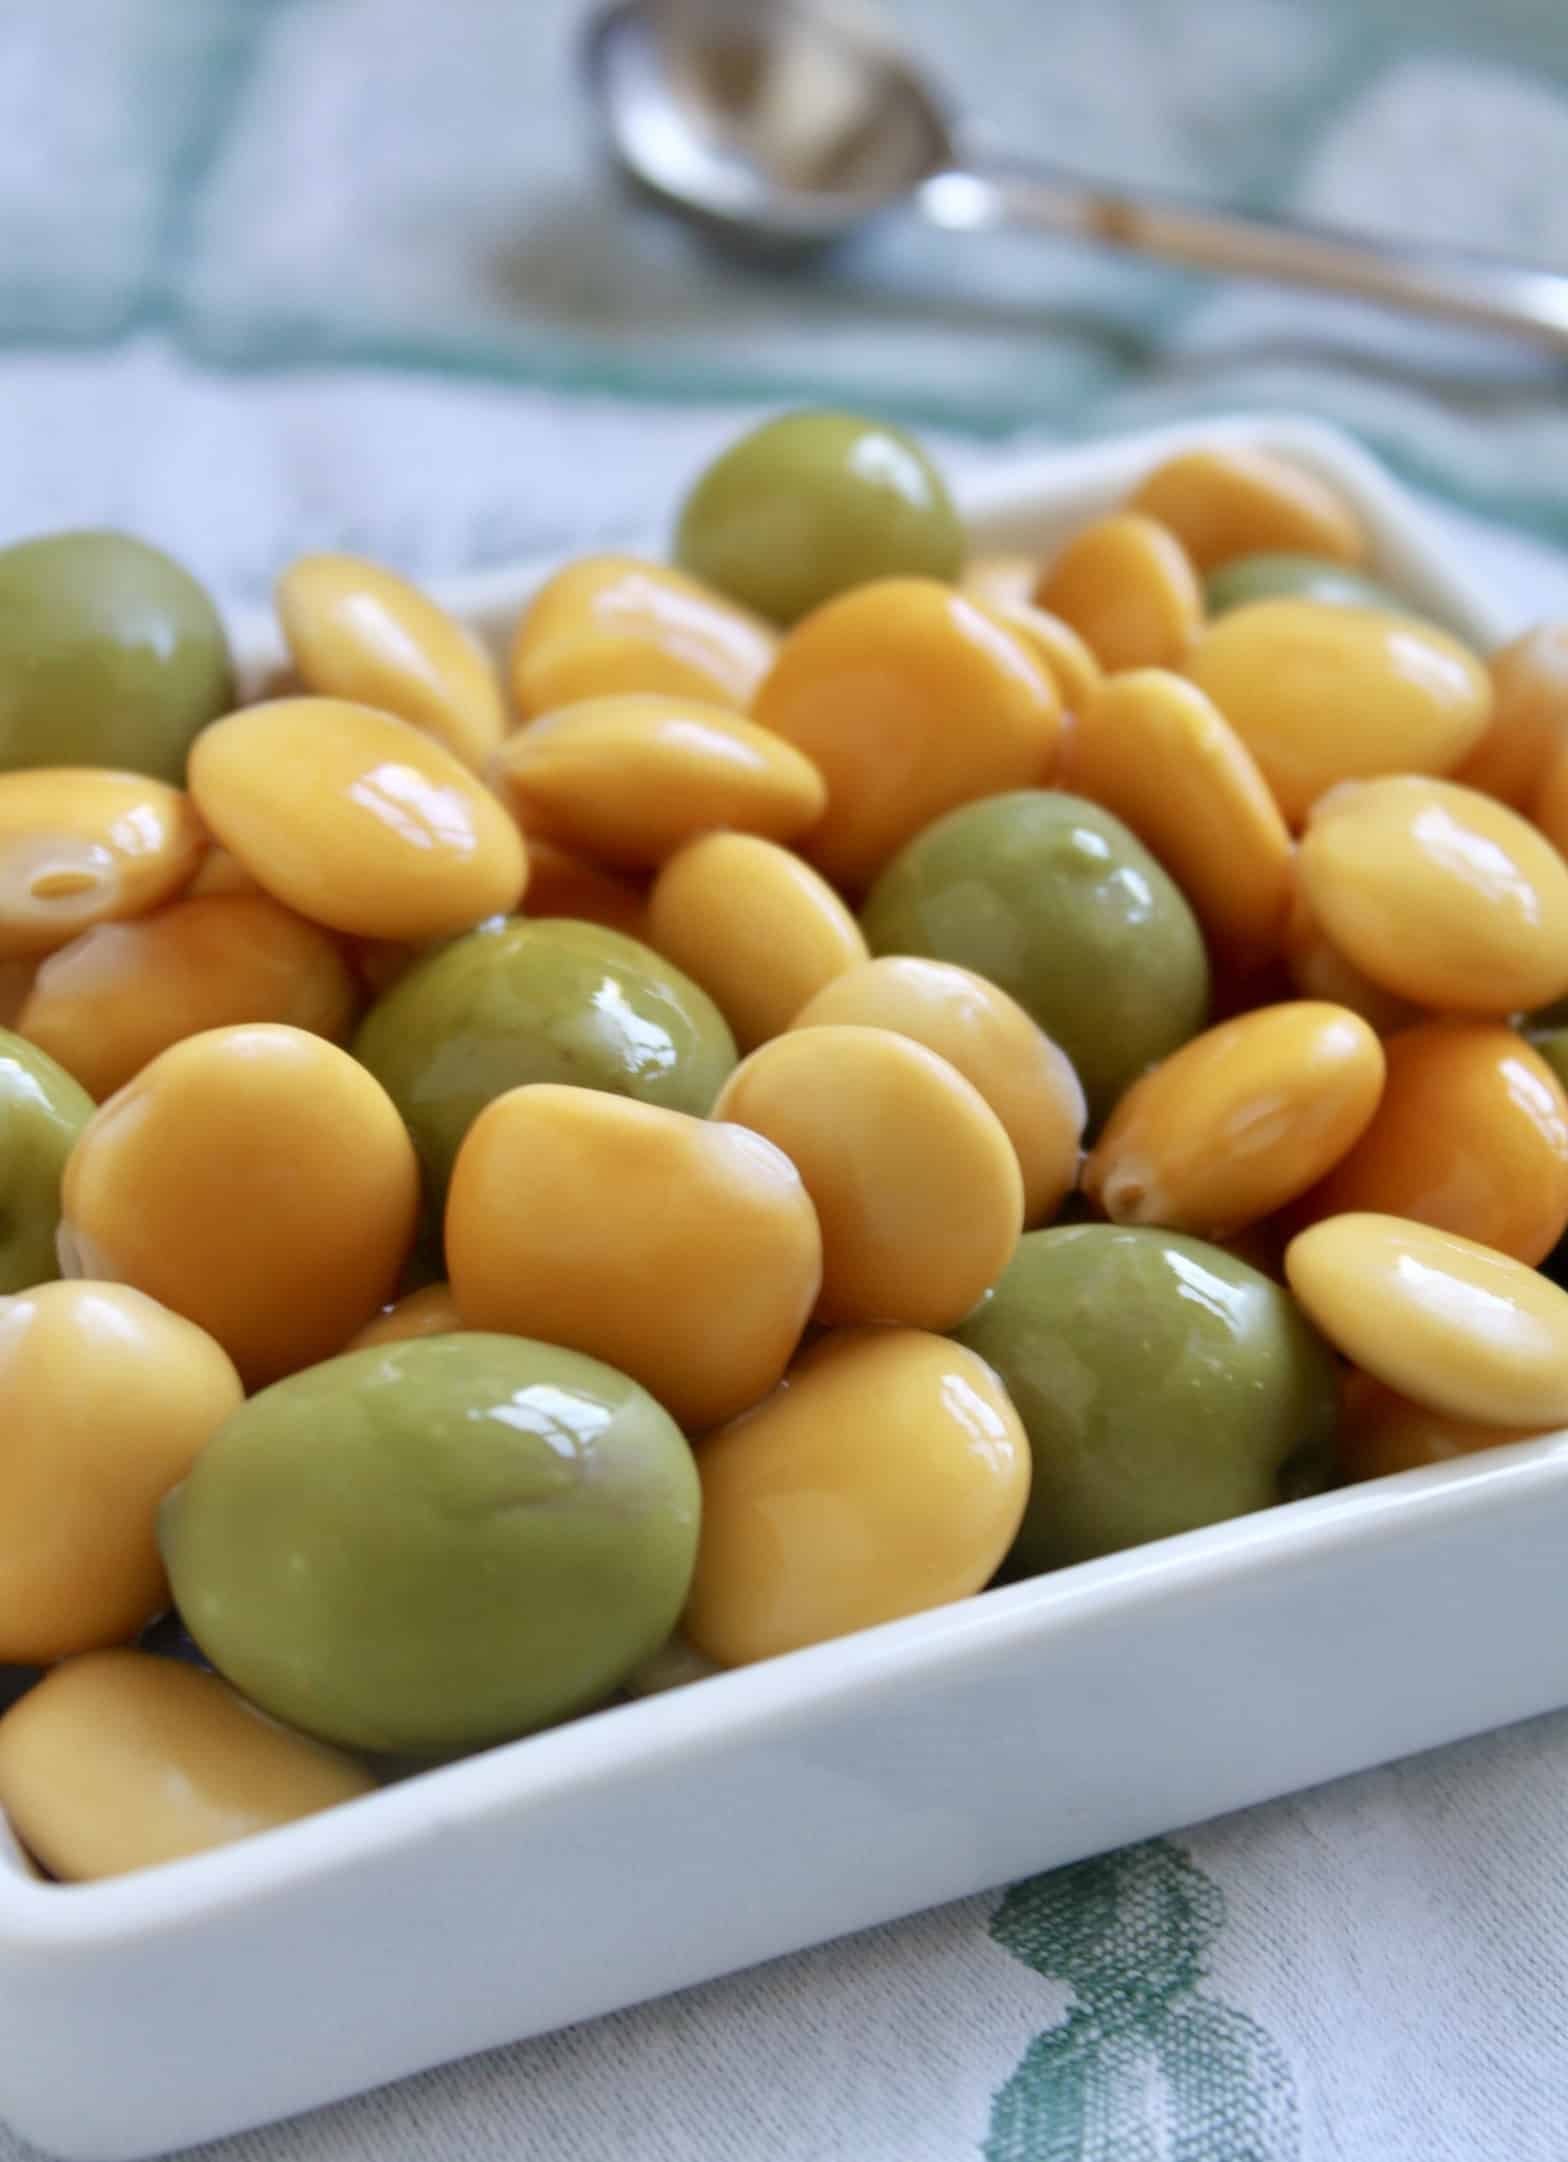 Cucina Viva Castelvetrano Olives Lupini Beans And Olives How To Cook Eat Lupini Christina S